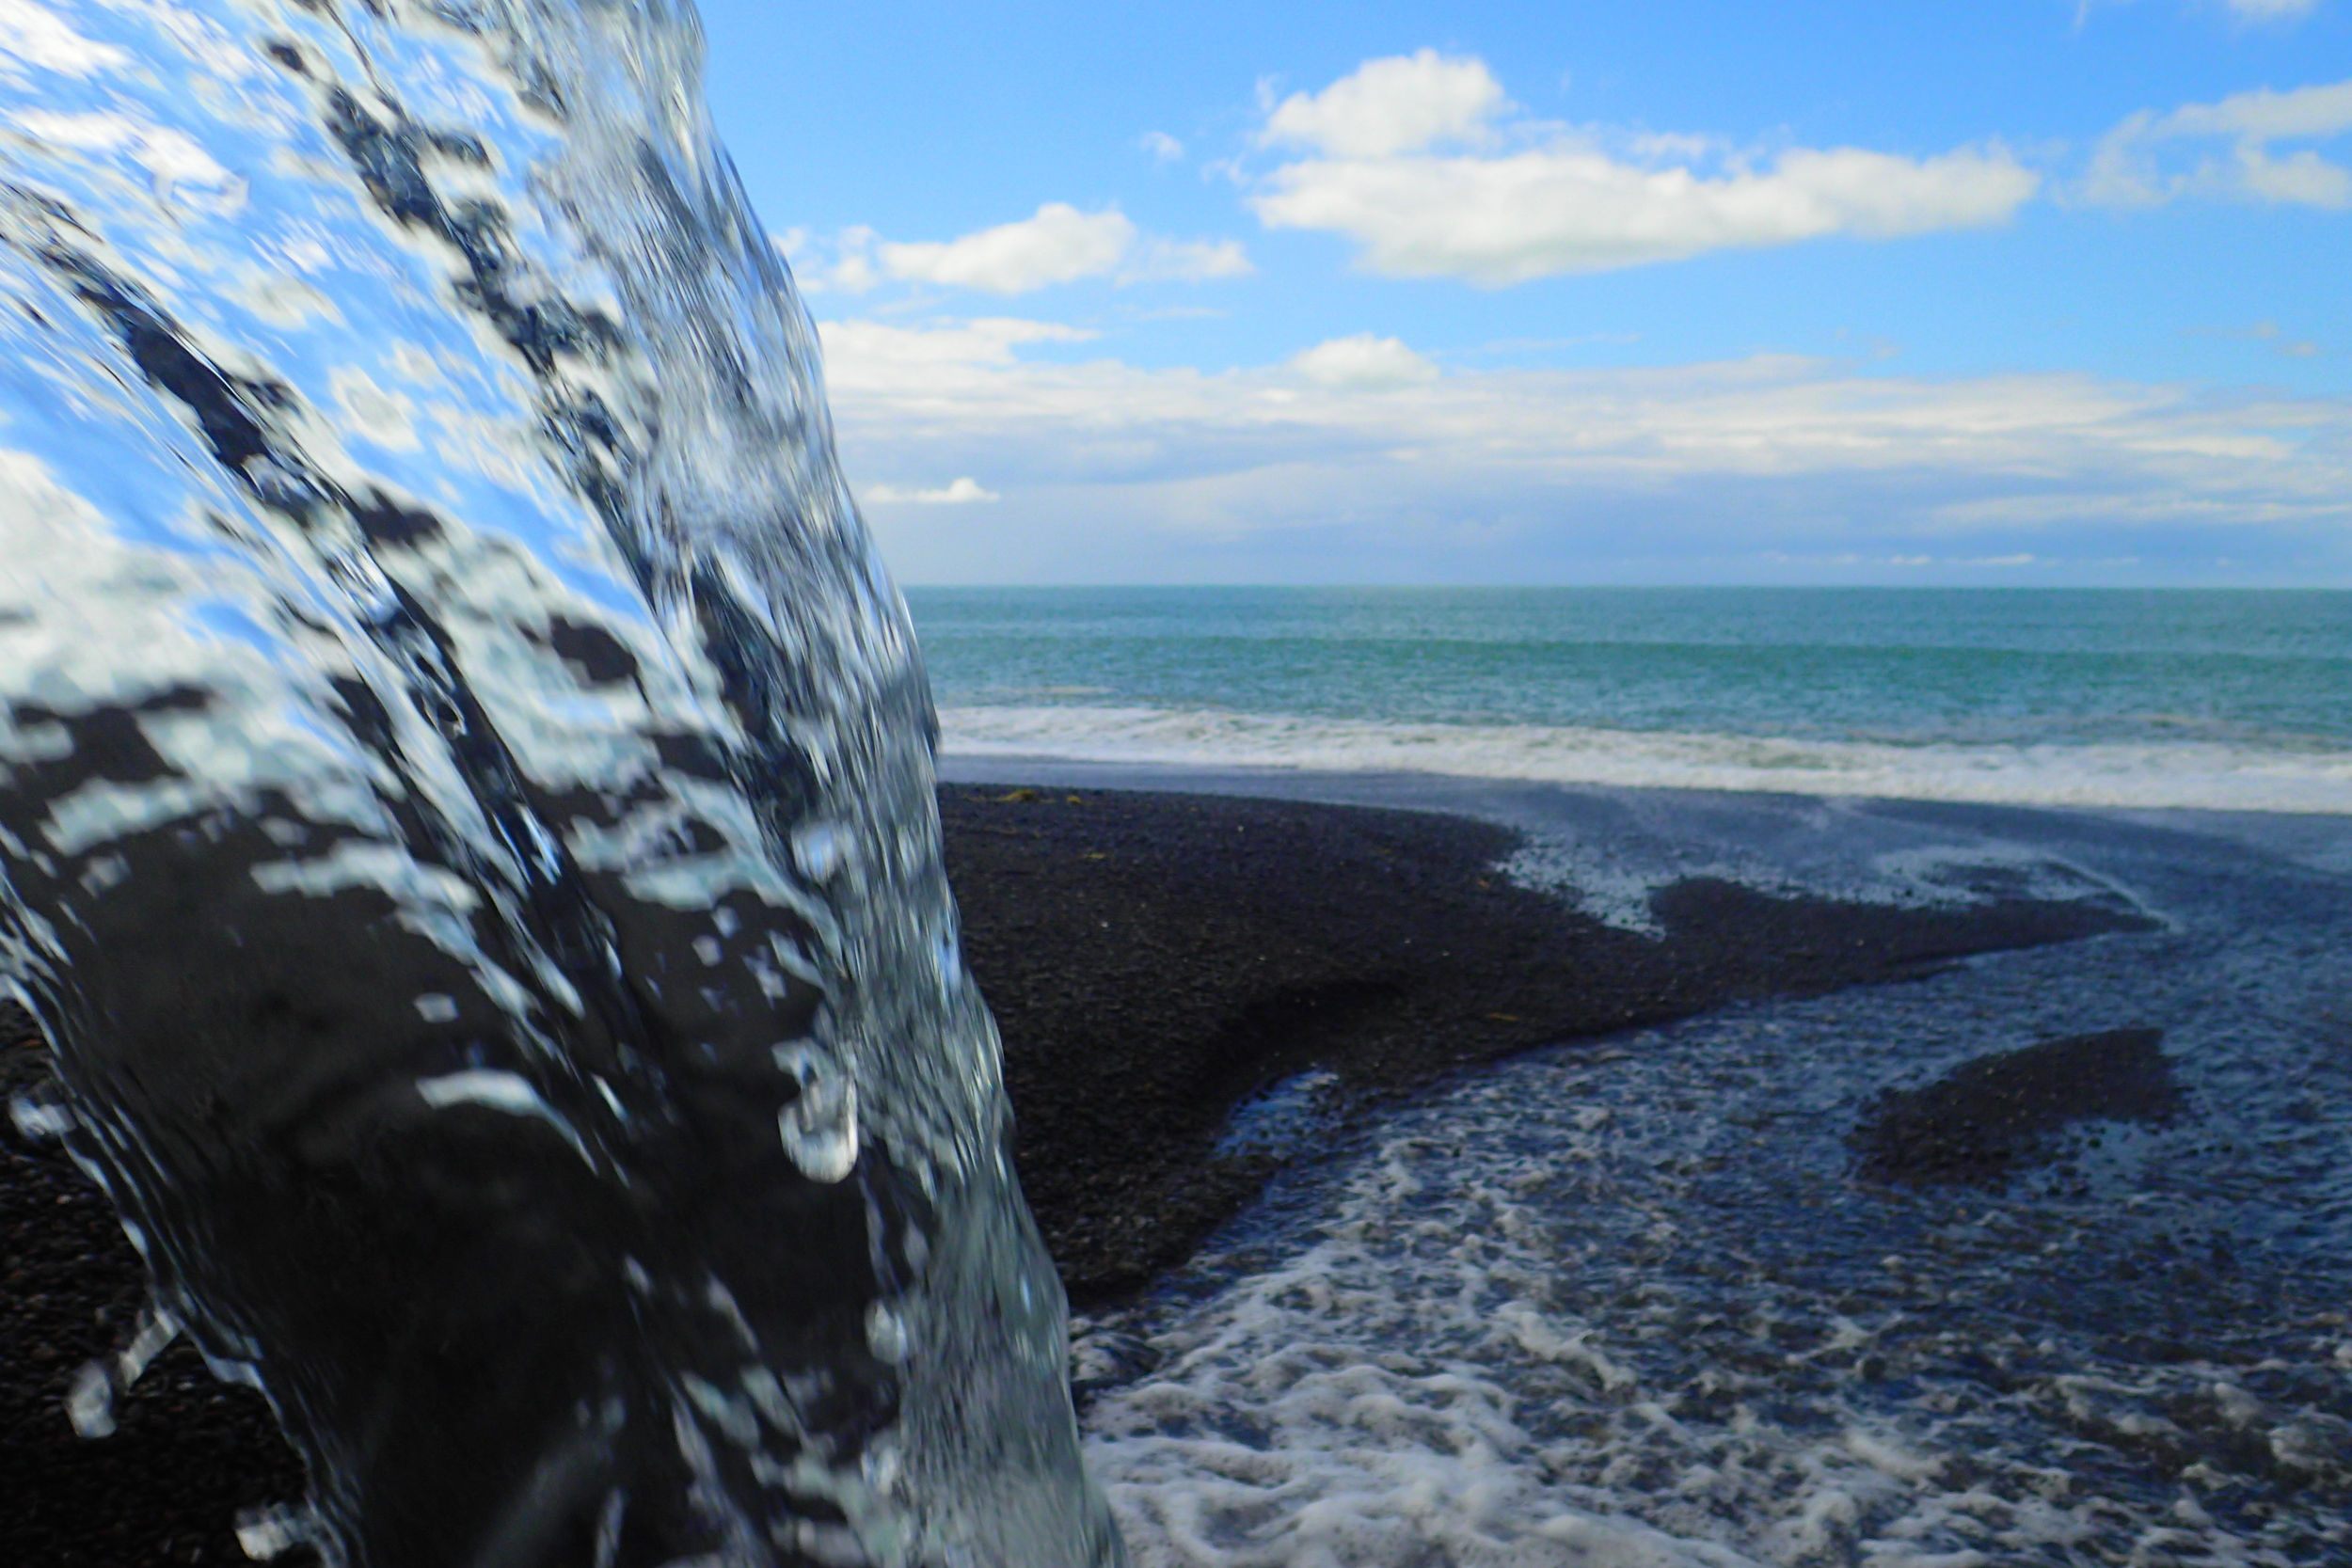 Water run-off into Hawke's Bay in New Zealand